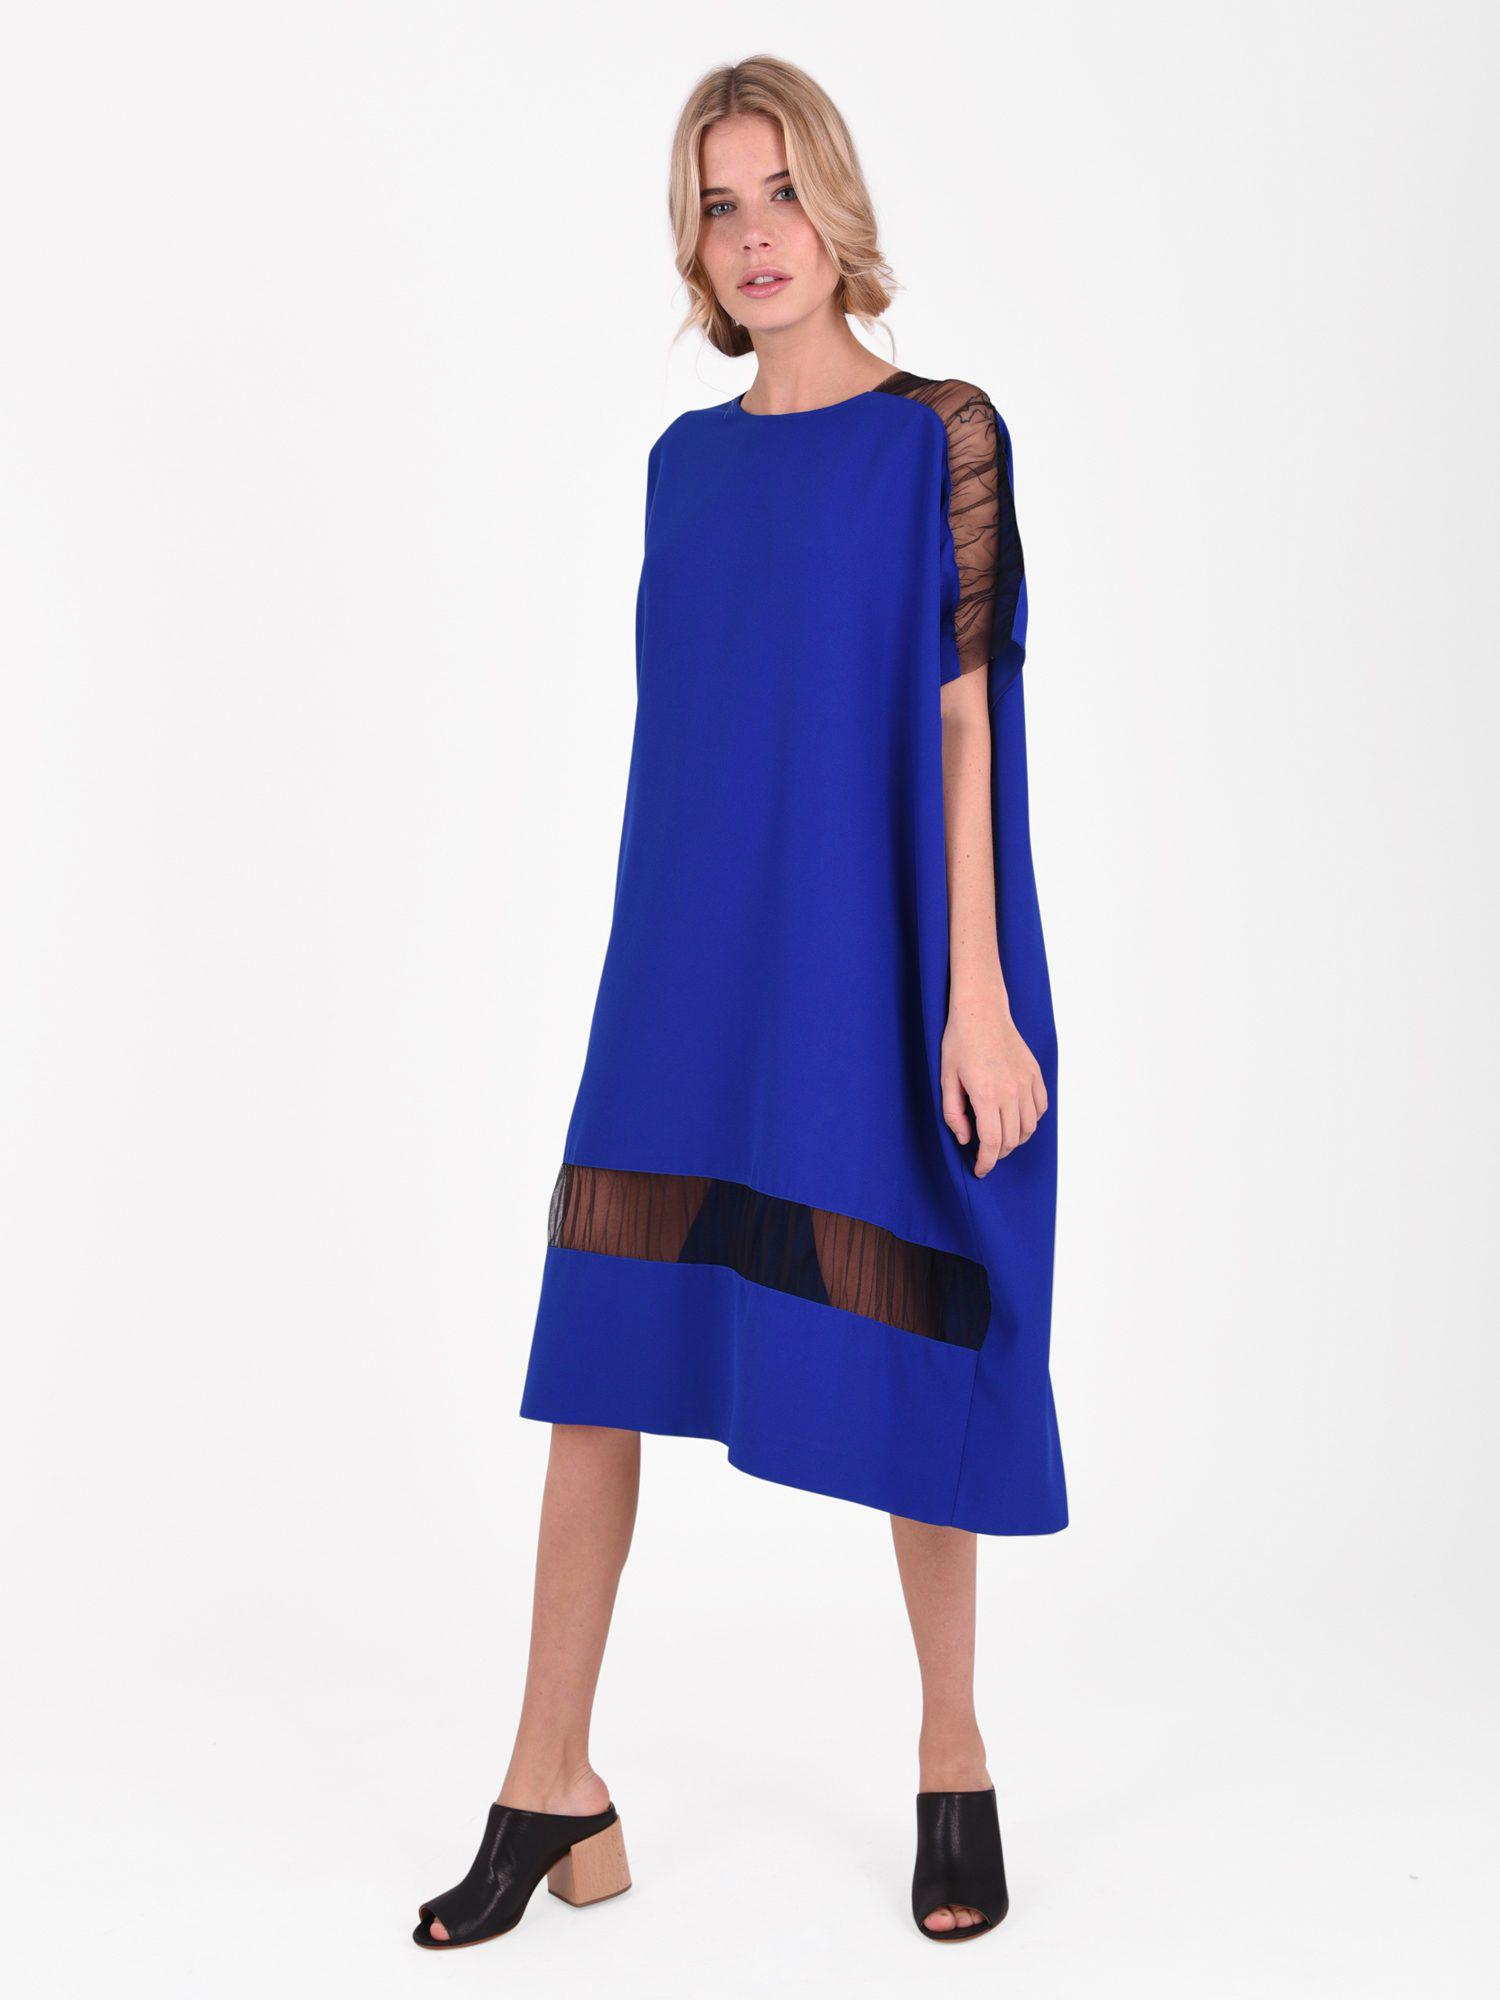 Outlet Online Shop Fast Delivery For Sale Dress with tulle inserts Maison Martin Margiela Cheap Sale Countdown Package Clearance For Sale Browse For Sale kdKt3RzdDp